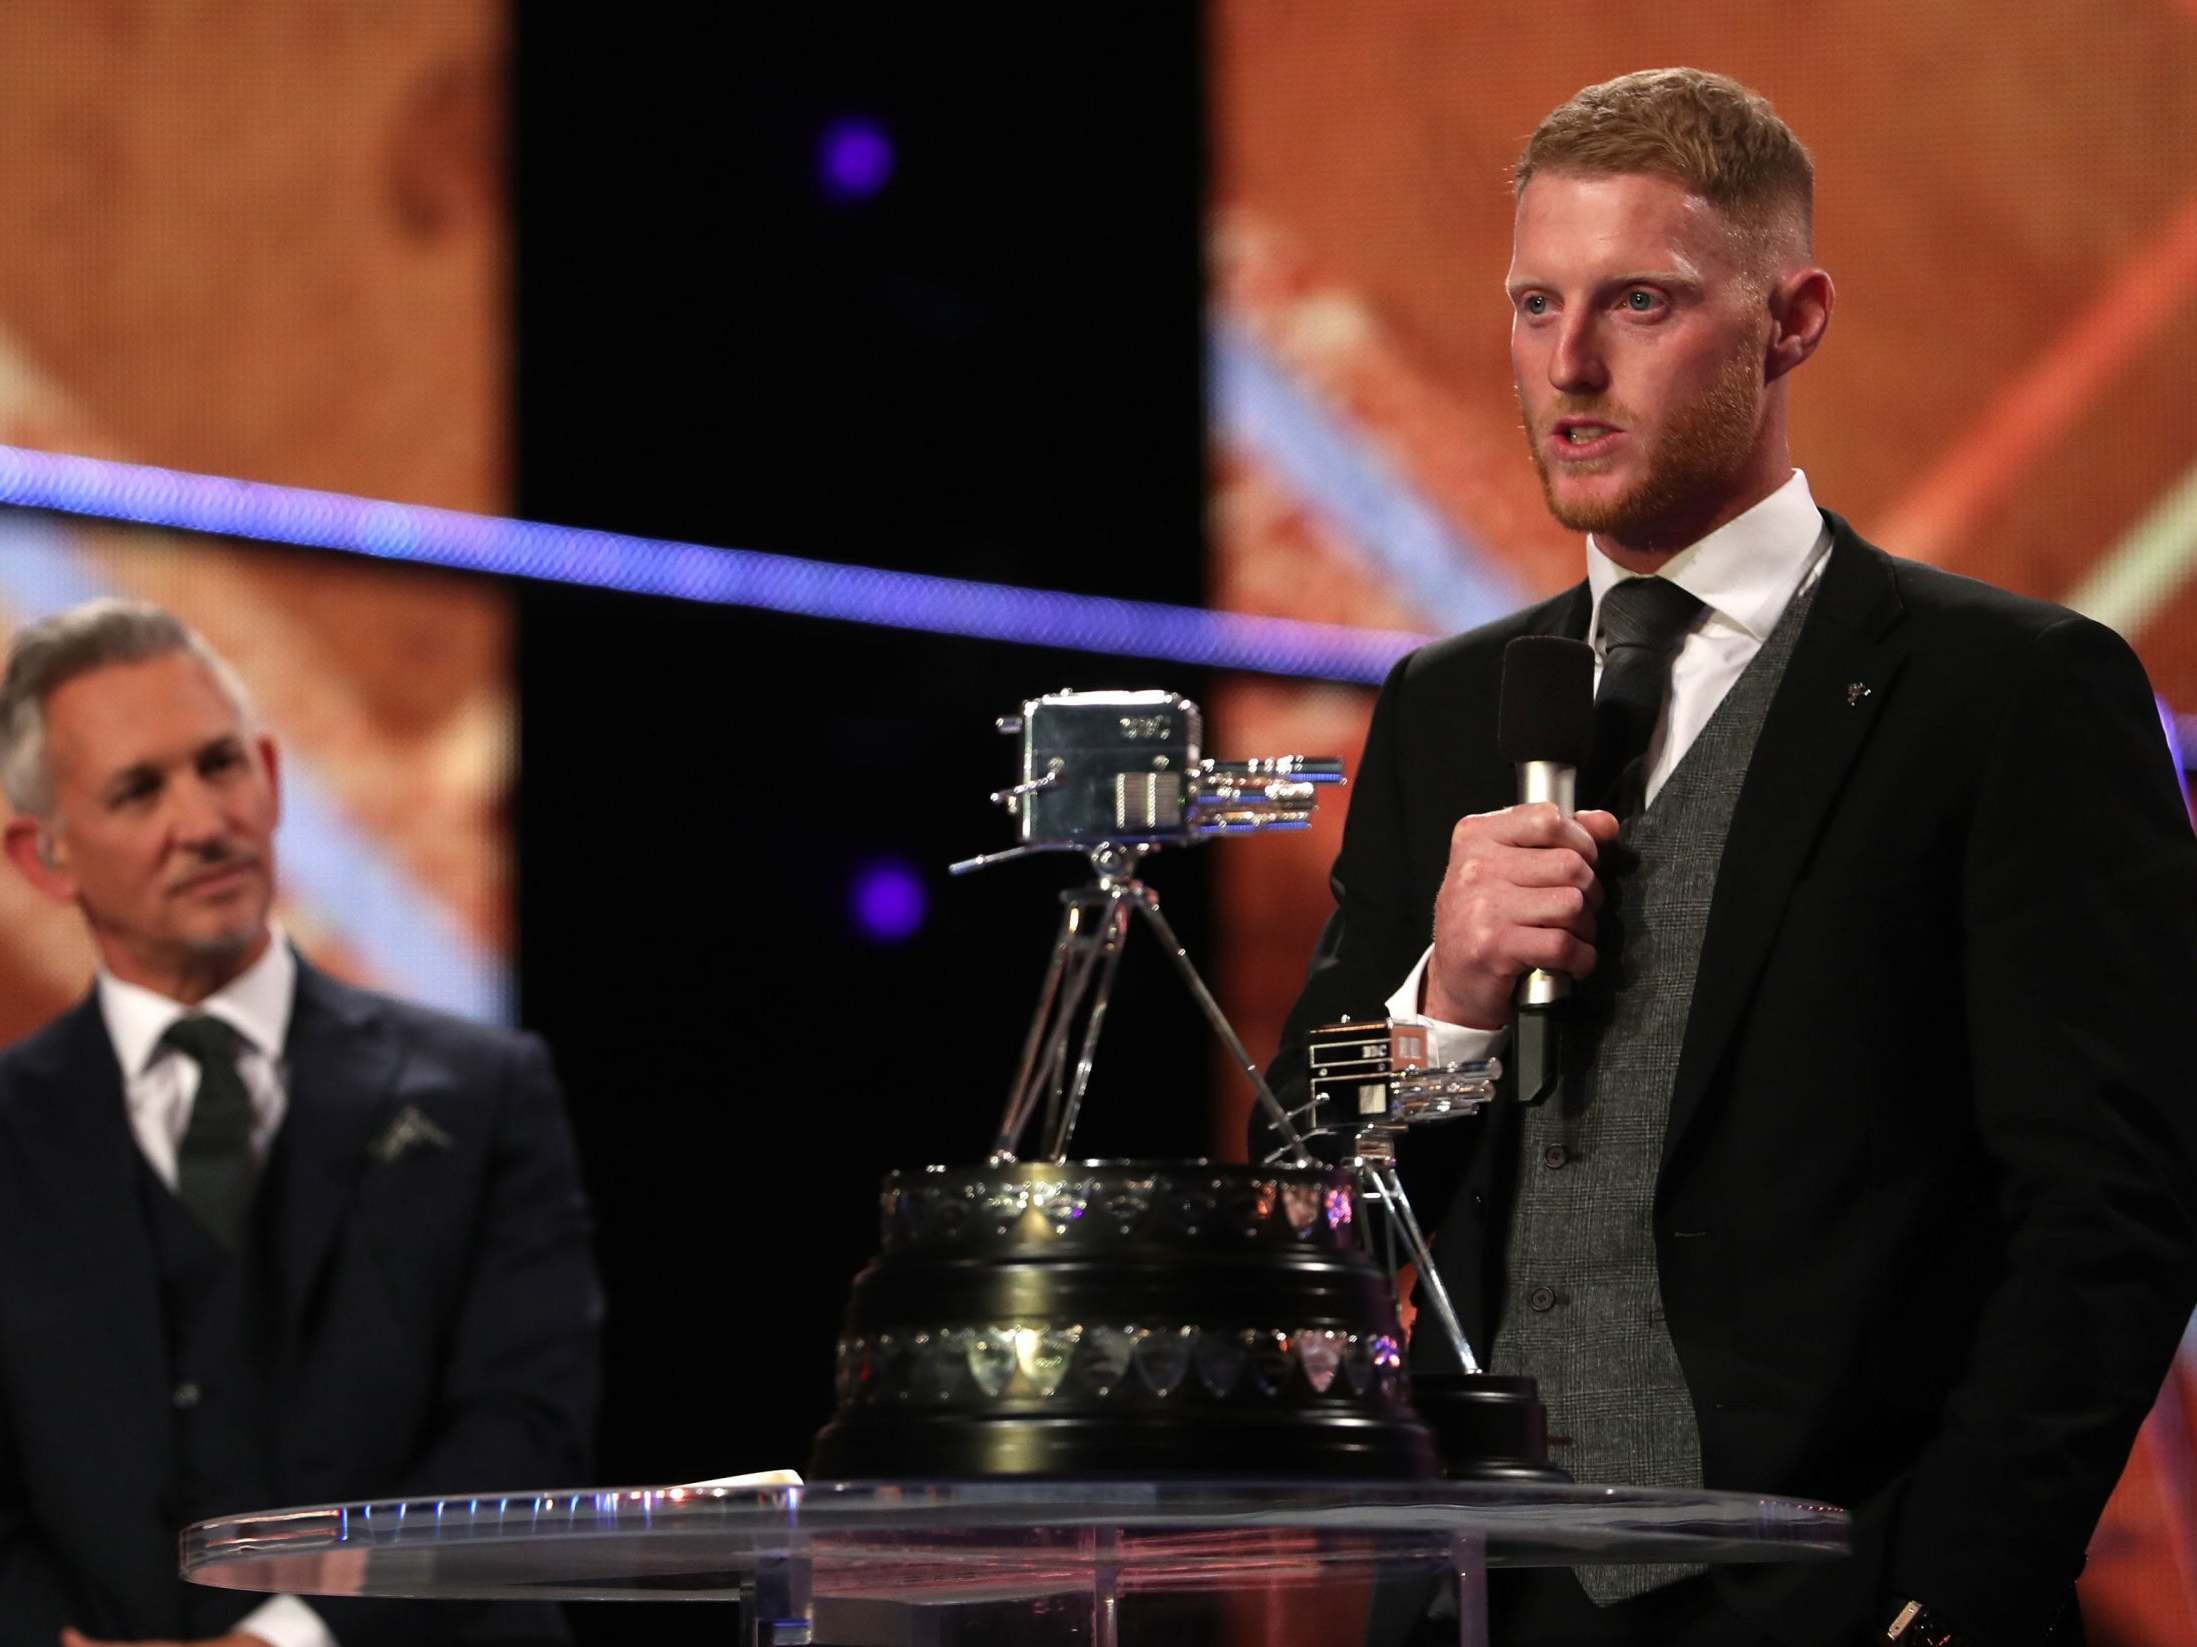 Sports Personality of the Year award: Ben Stokes crowned 2019 winner after England's World Cup glory